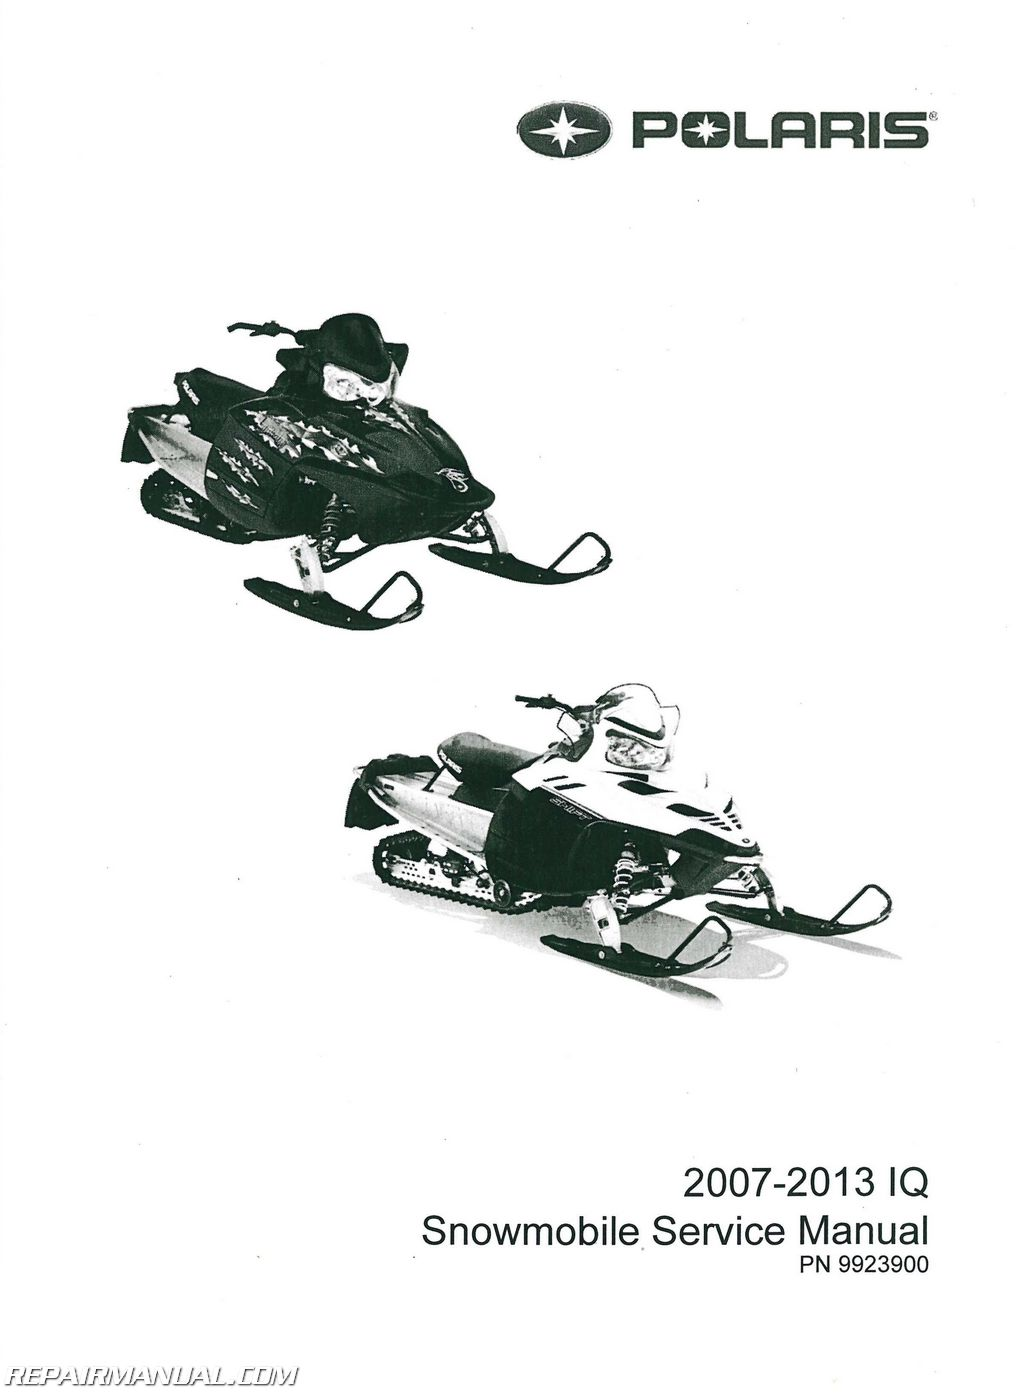 2007 2013 polaris iq snowmobile service manual rh repairmanual com 2004  Polaris RMK 600 2010 Polaris RMK 600 Snowmobiles